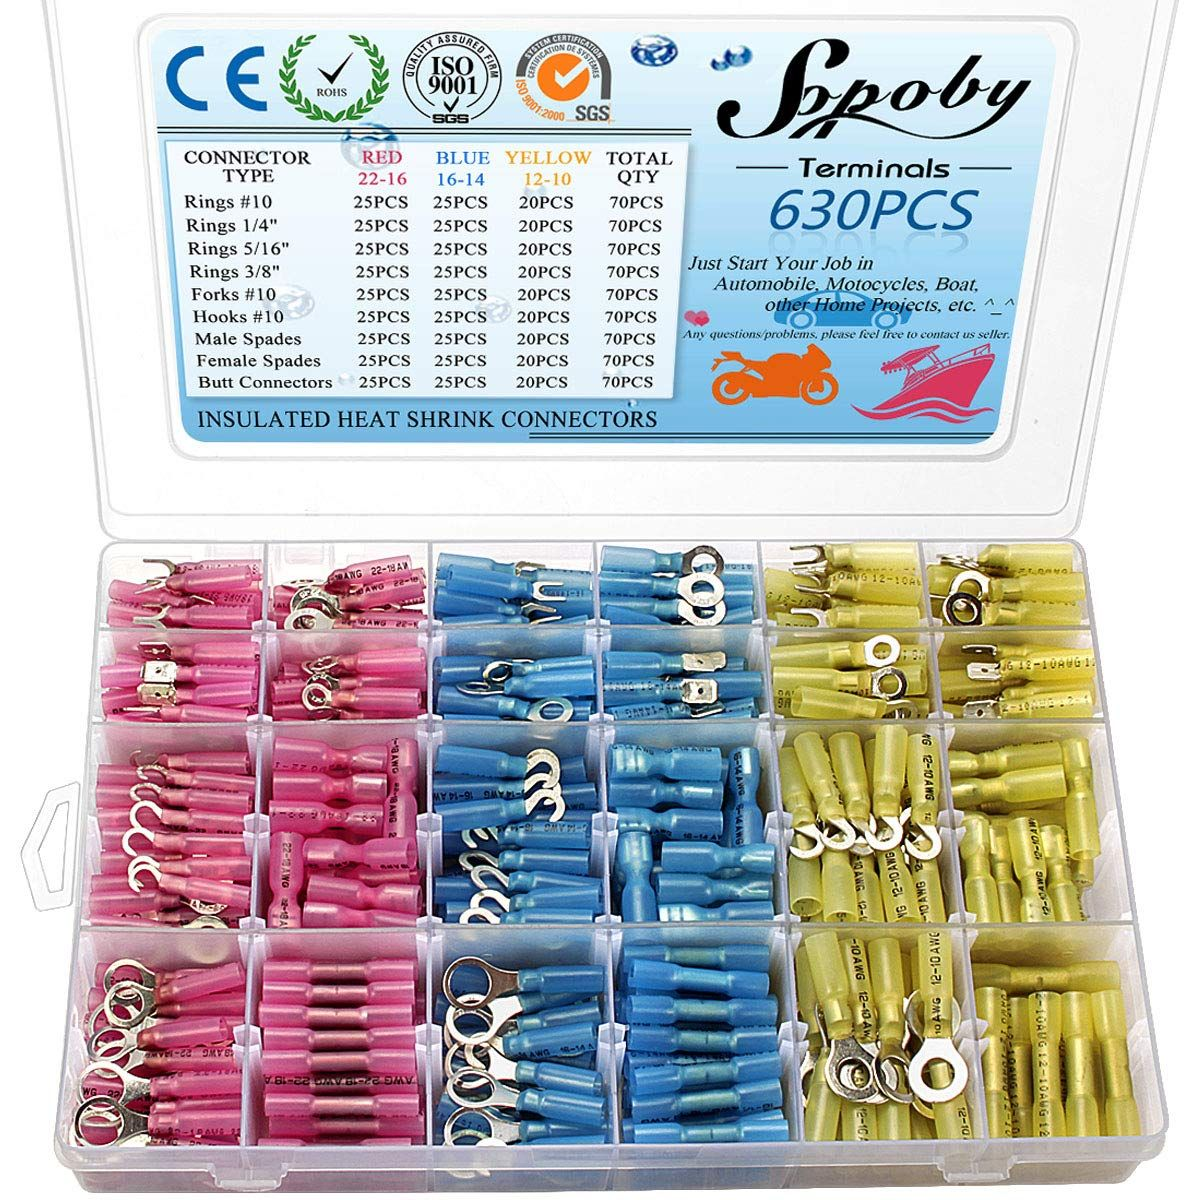 630pcs heat shrink connectors sopoby electrical wire connectors crimp connectors insulated automotive marine waterproof wire terminal kit ring fork hook  [ 1200 x 1200 Pixel ]